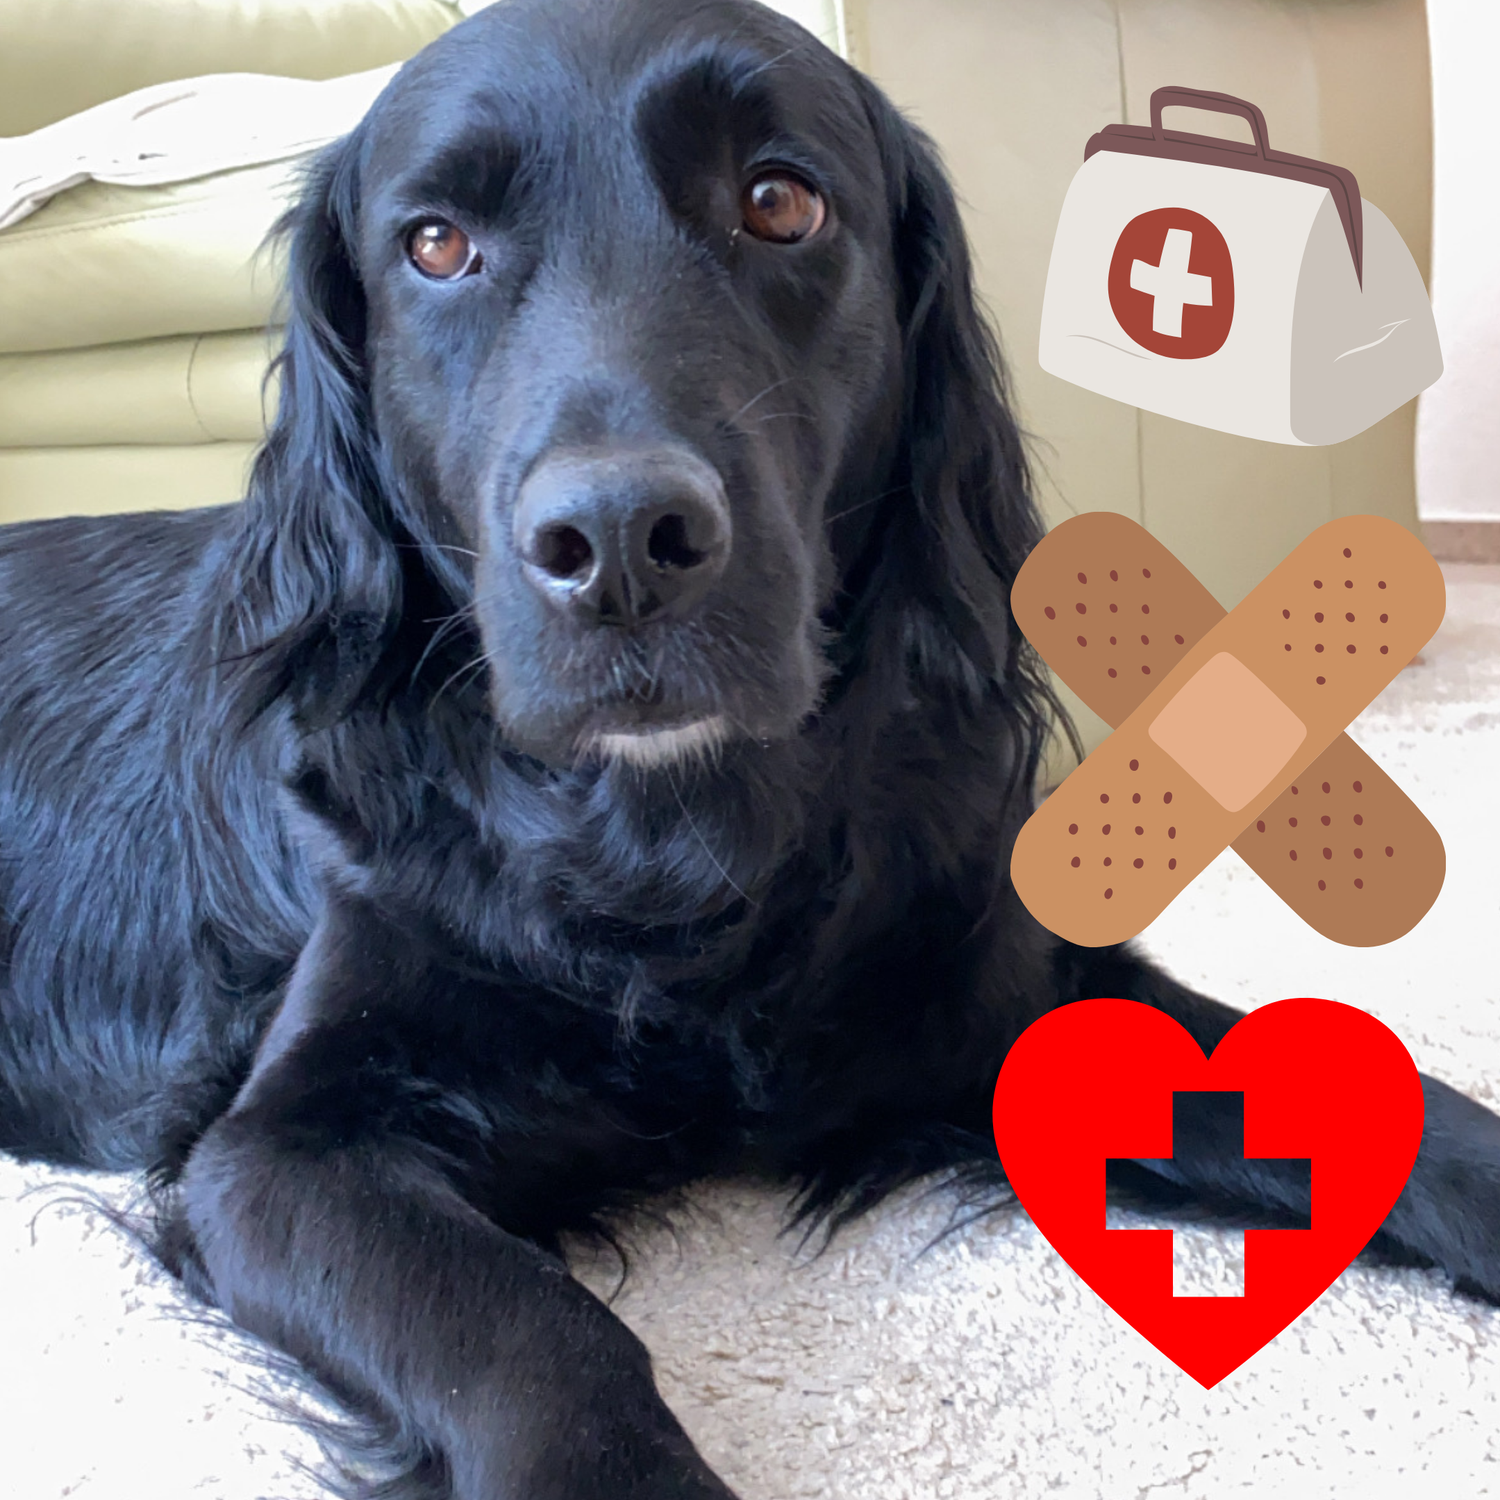 >>Medical Training mit Hunden: so geht's – Teil 2<<